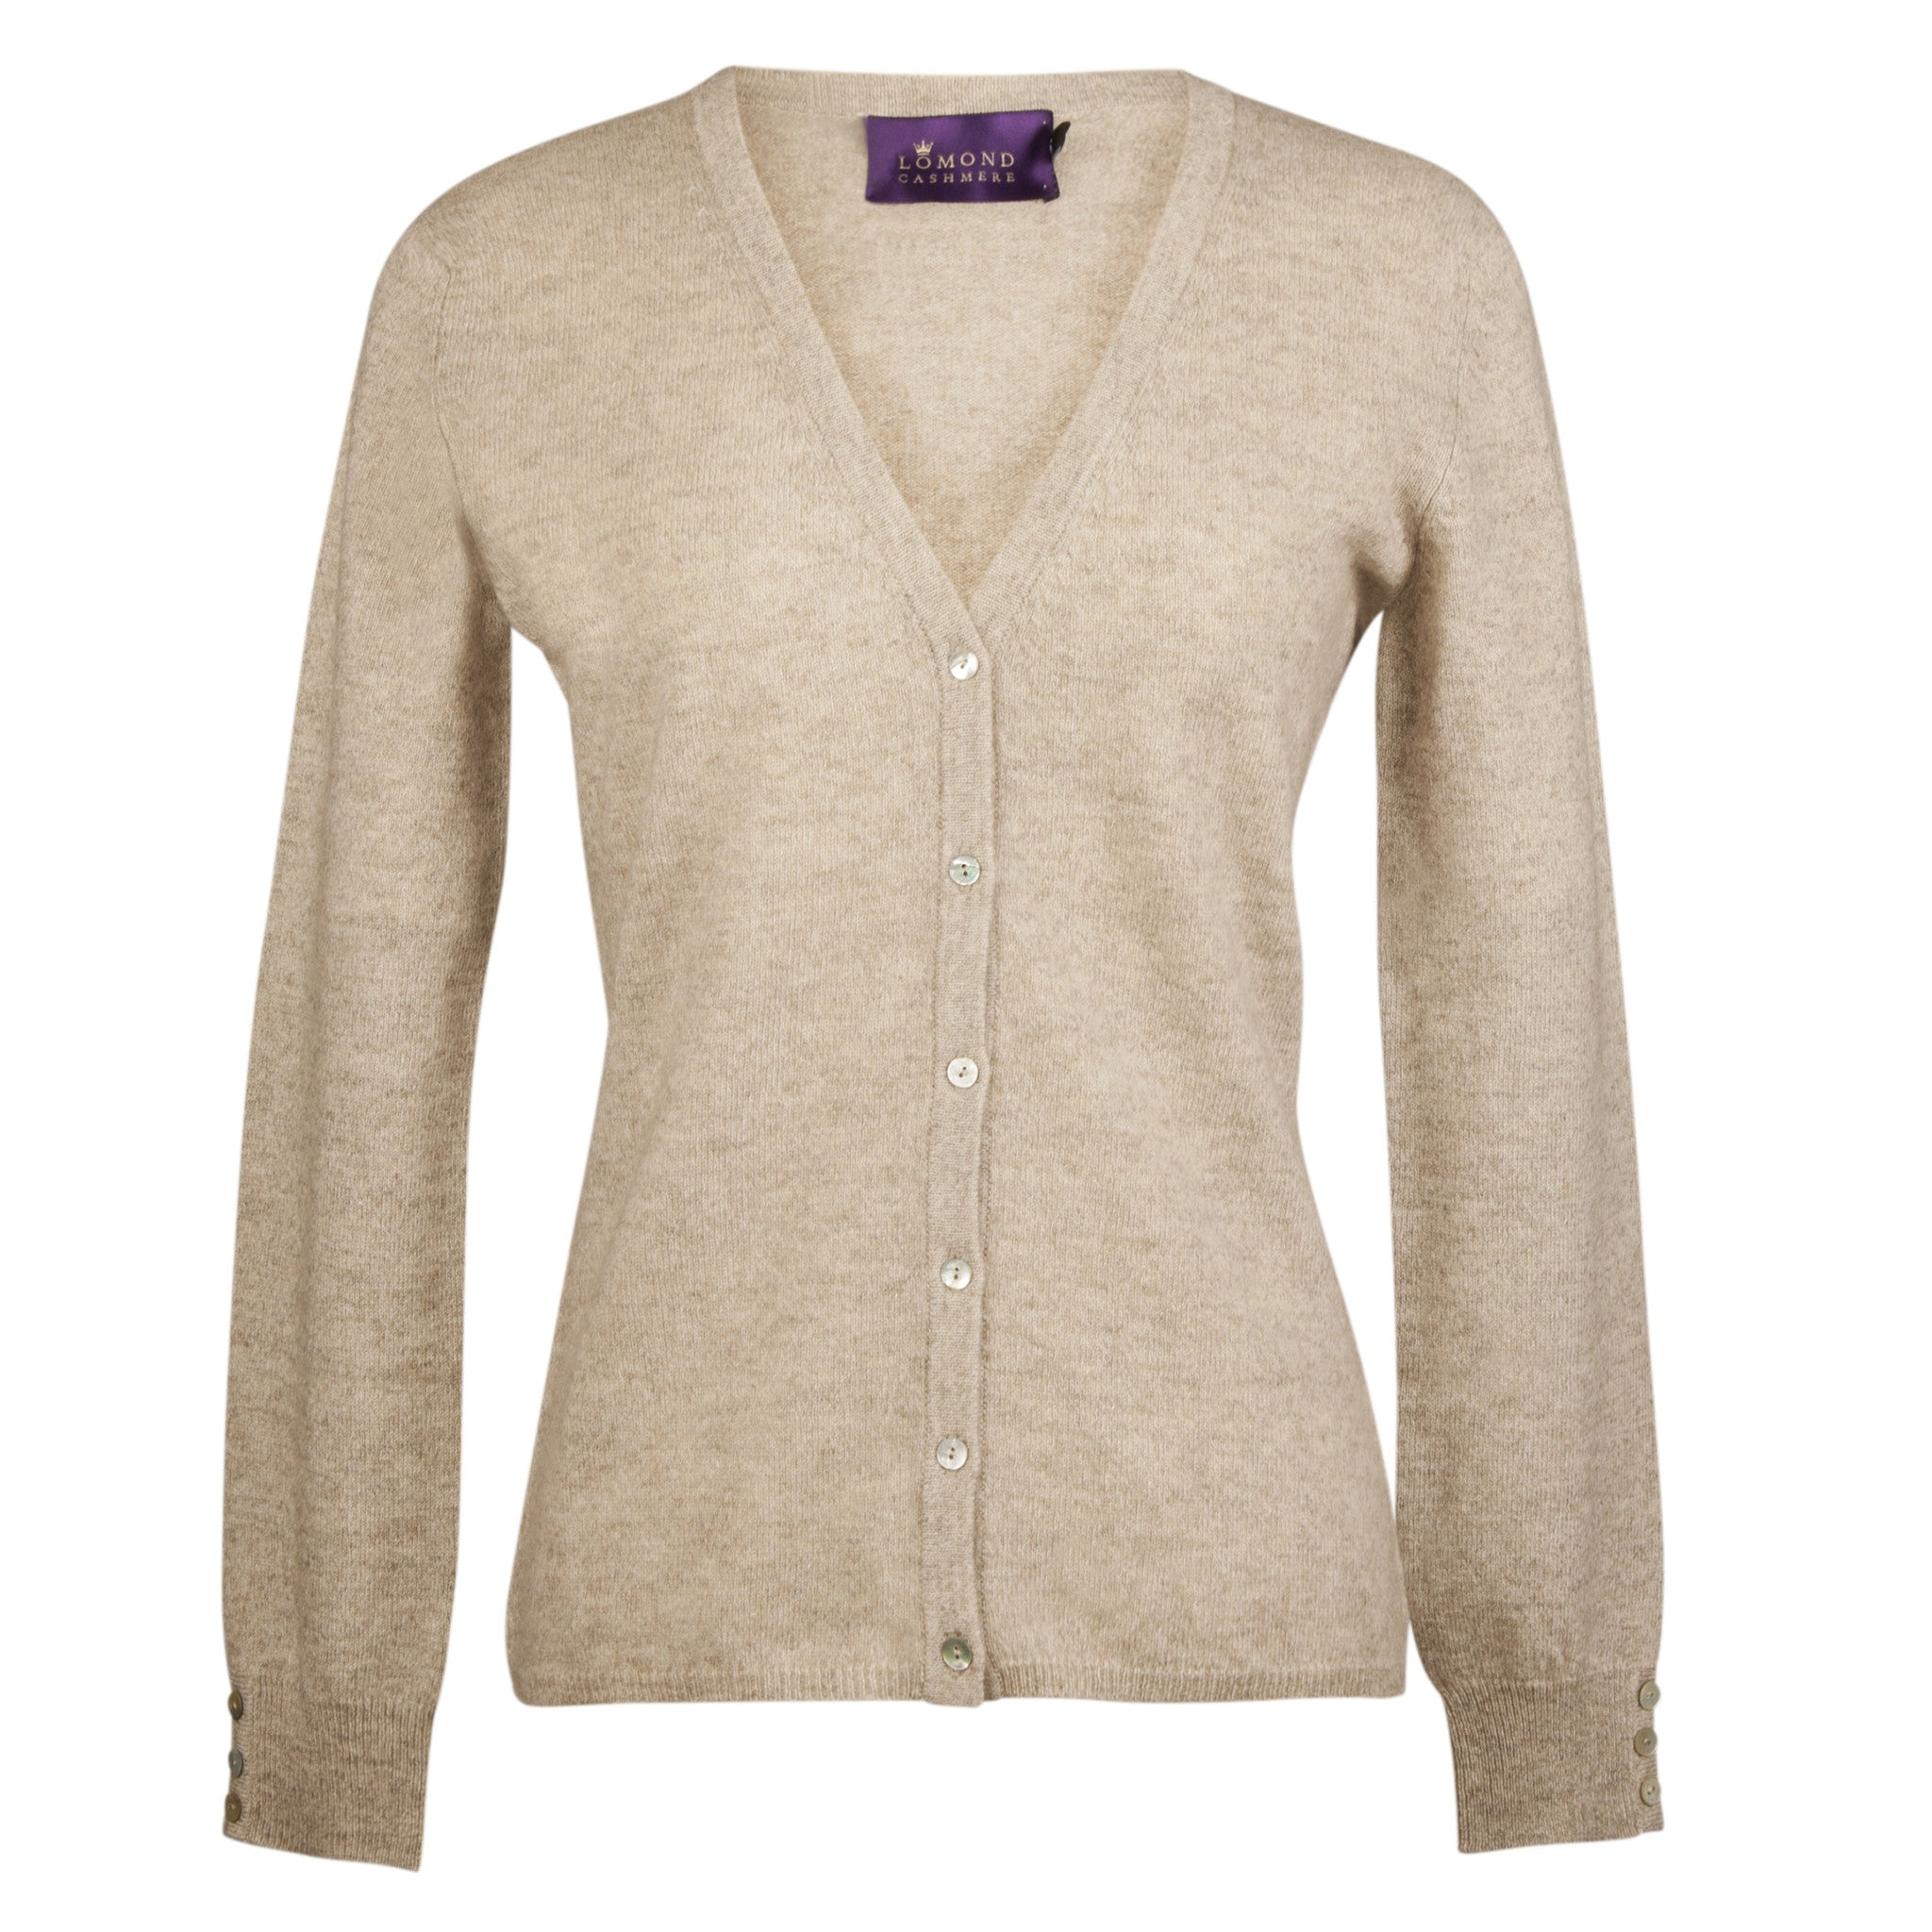 Natural Beige Oatmeal Ladies Fitted Cashmere V Neck Cardigan | buy now at The Cashmere Choice London